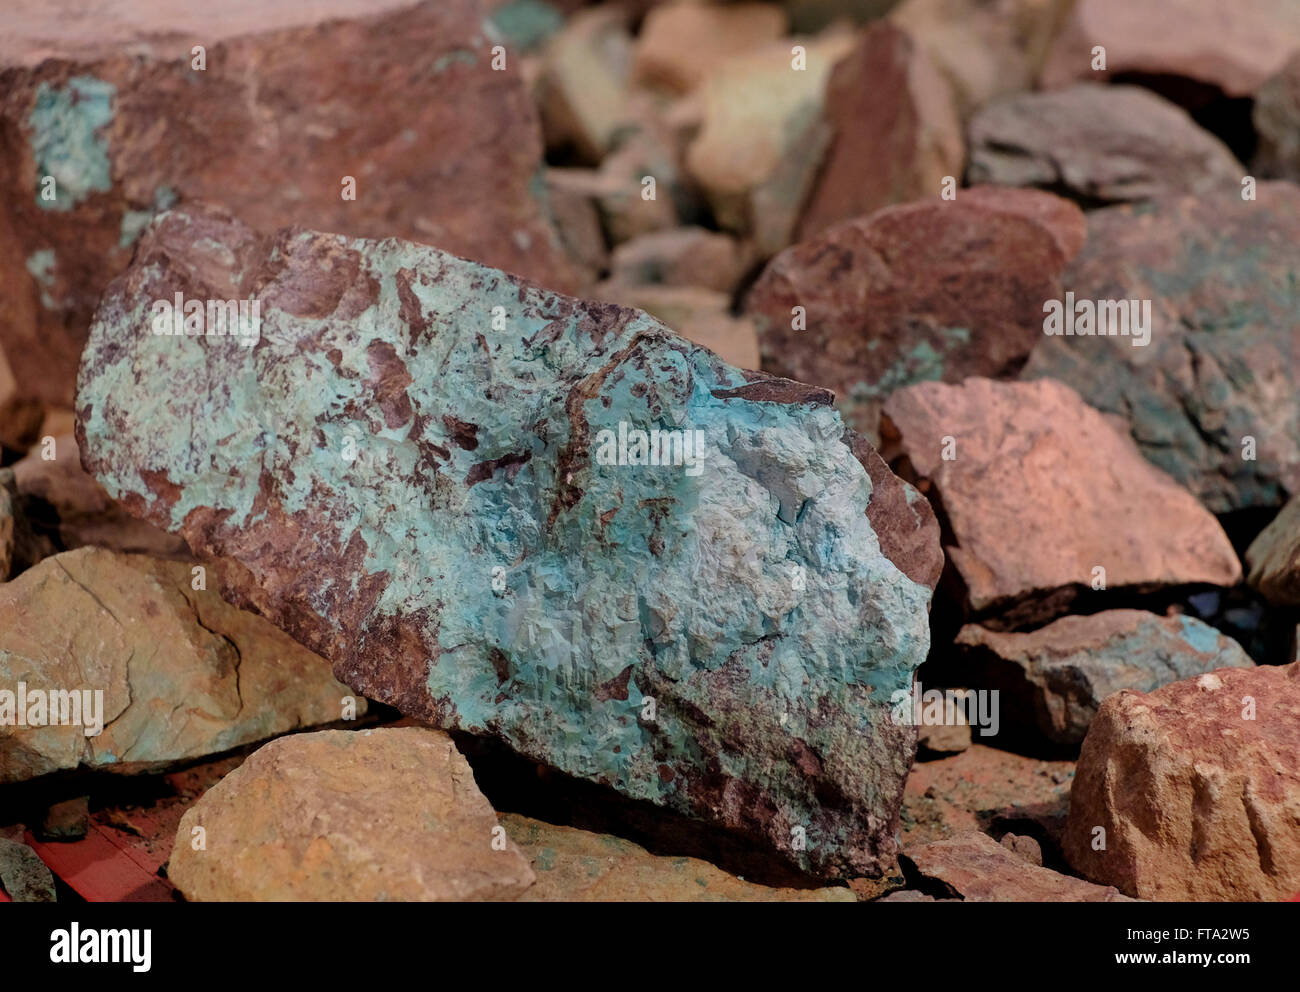 A copper stone from Timna copper mine in southern Israel - Stock Image